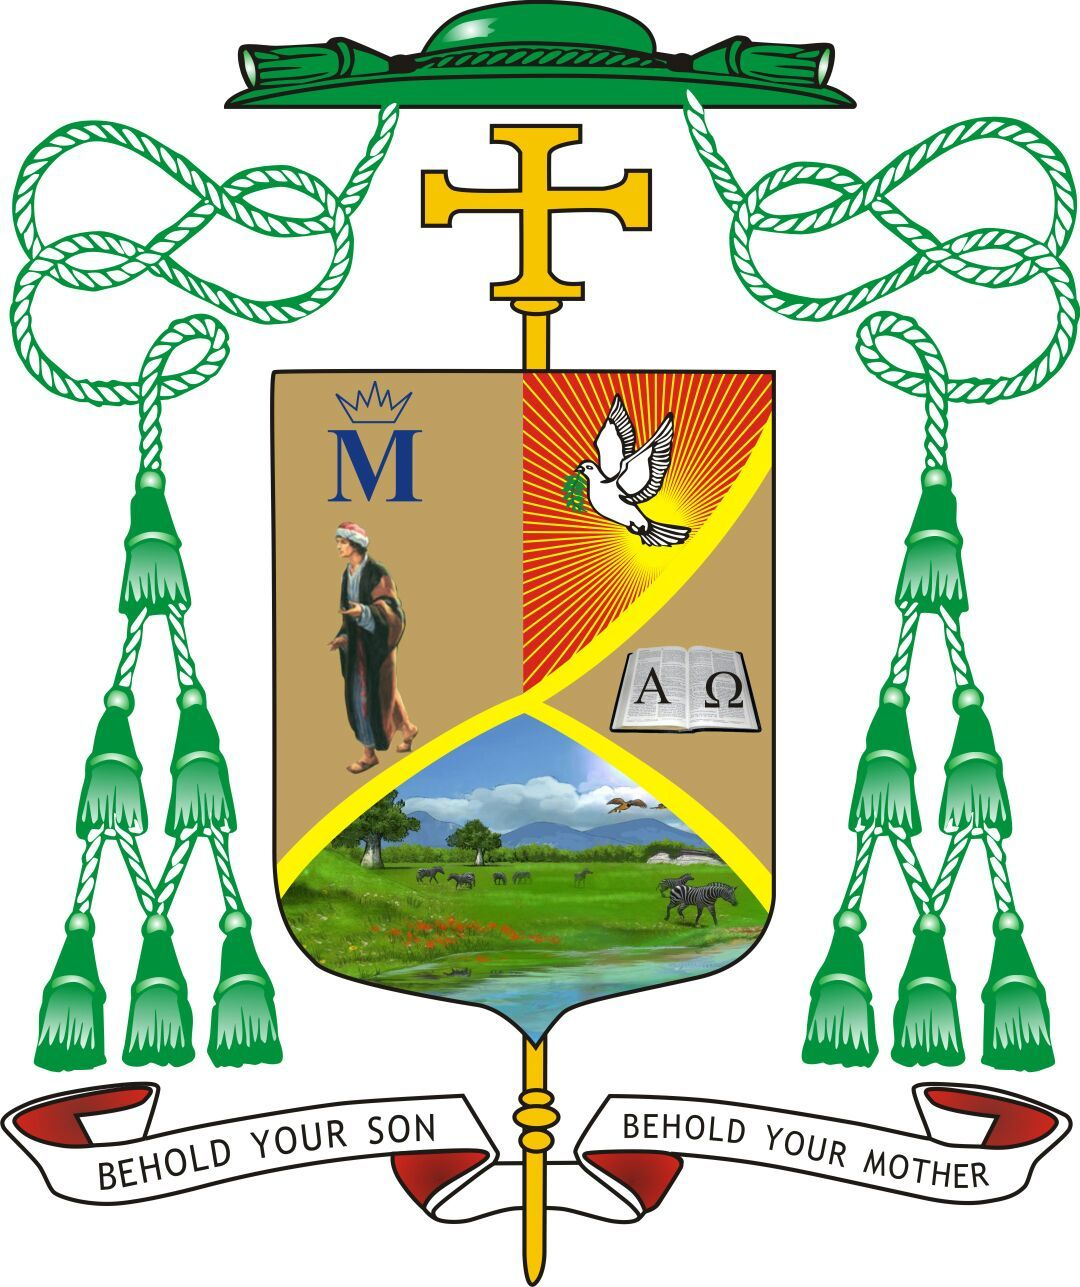 Coat of Arms of Bishop Mulenga